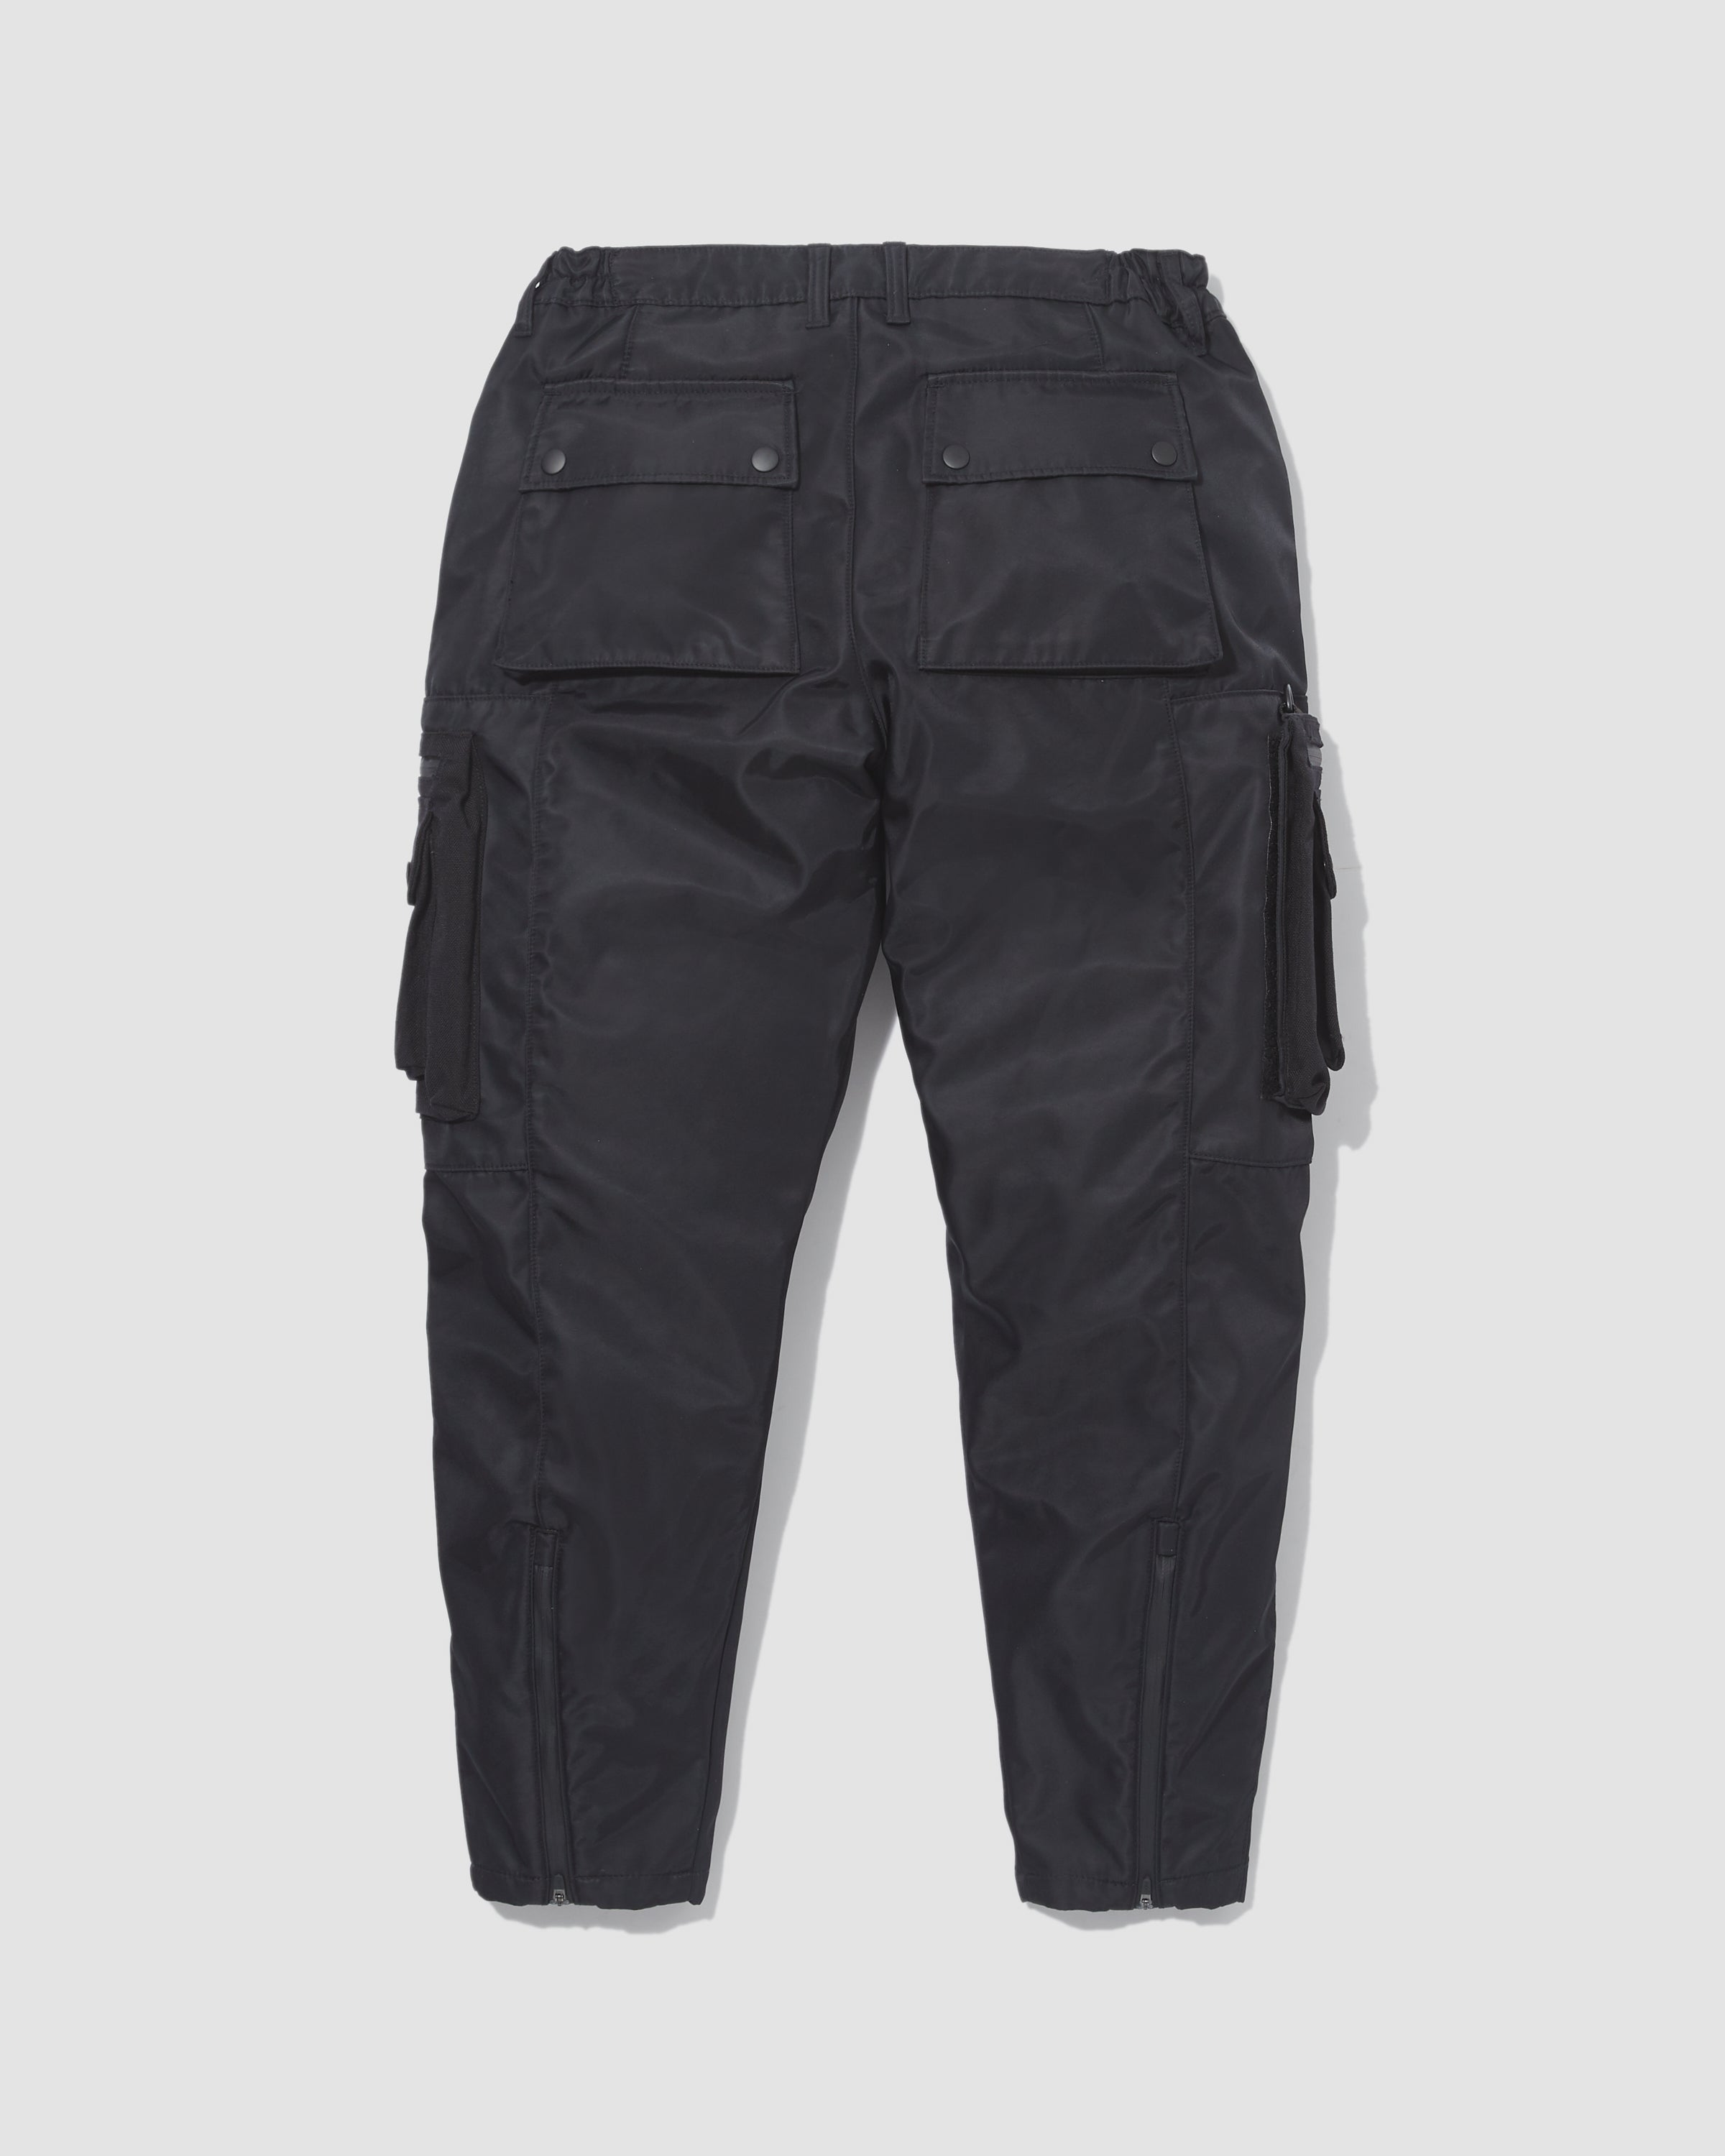 Techwear Pants - Black